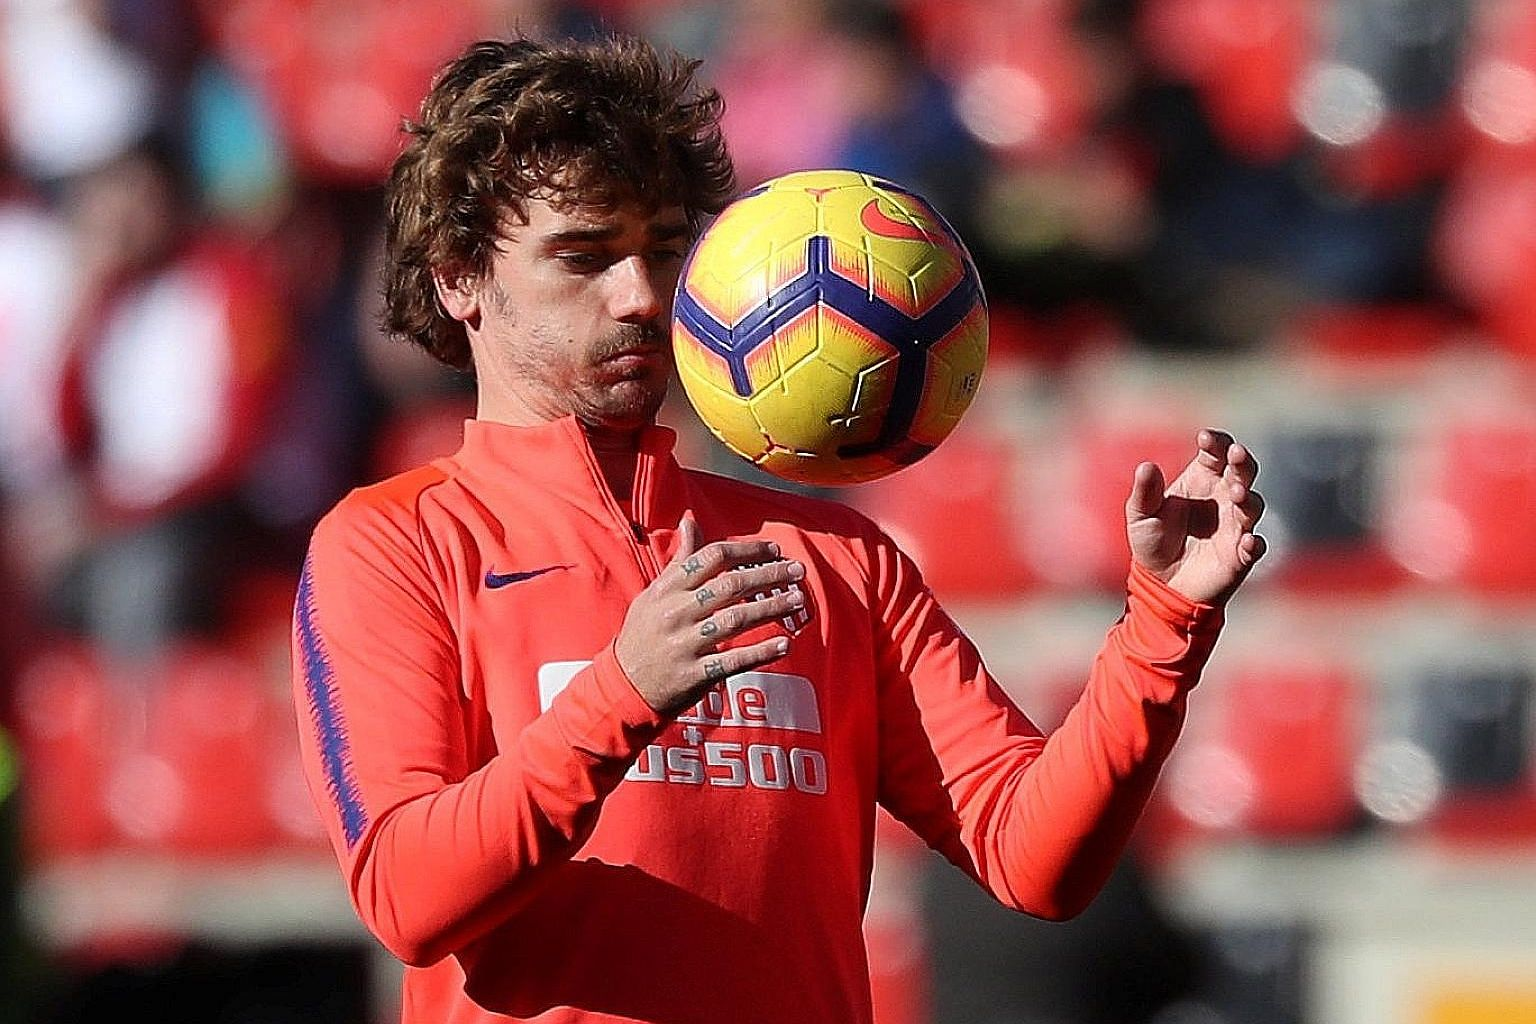 Antoine Griezmann would be forgiven for regretting his opportunity to sign for Barcelona. Already out of the King's Cup and the Champions League, Atletico have a huge task trying to close their eight-point gap when they visit the LaLiga leaders today